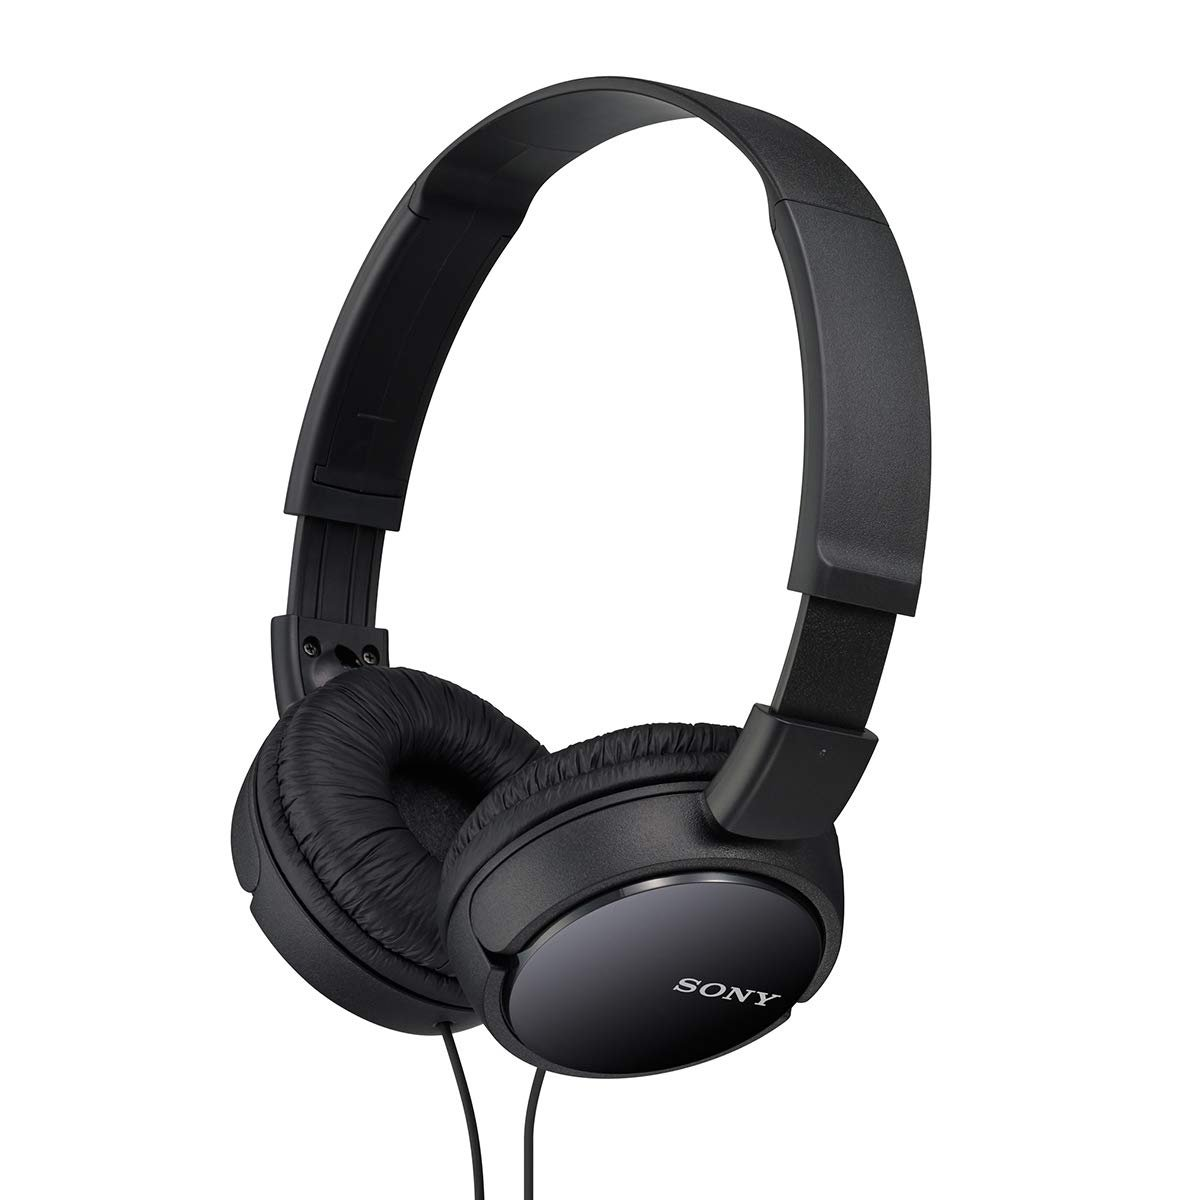 Sony MDRZX110 Stereo Headphones - Assorted Colors / Black